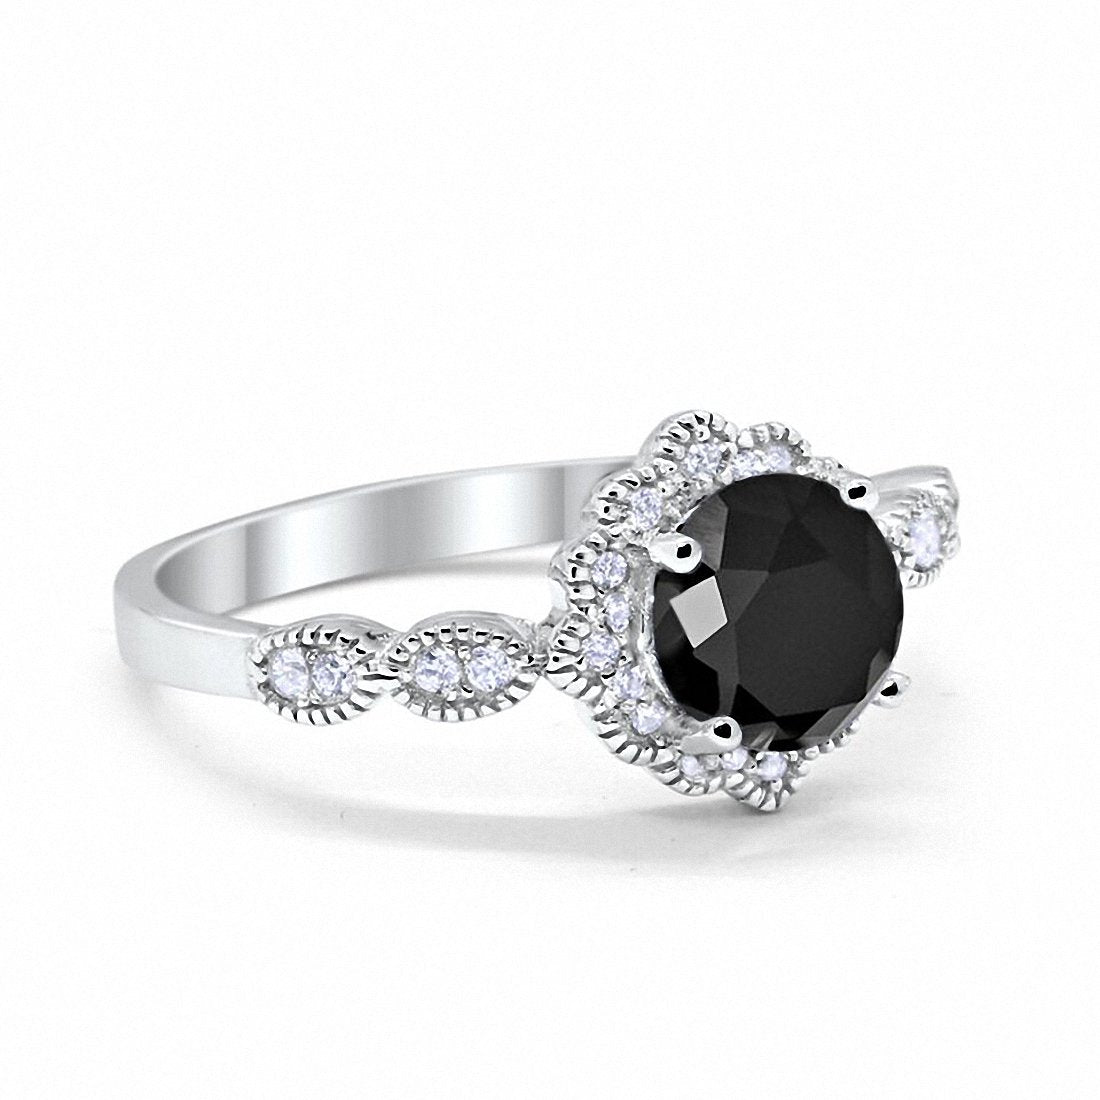 Floral Art Wedding Ring Simulated Black Cubic Zirconia 925 Sterling Silver